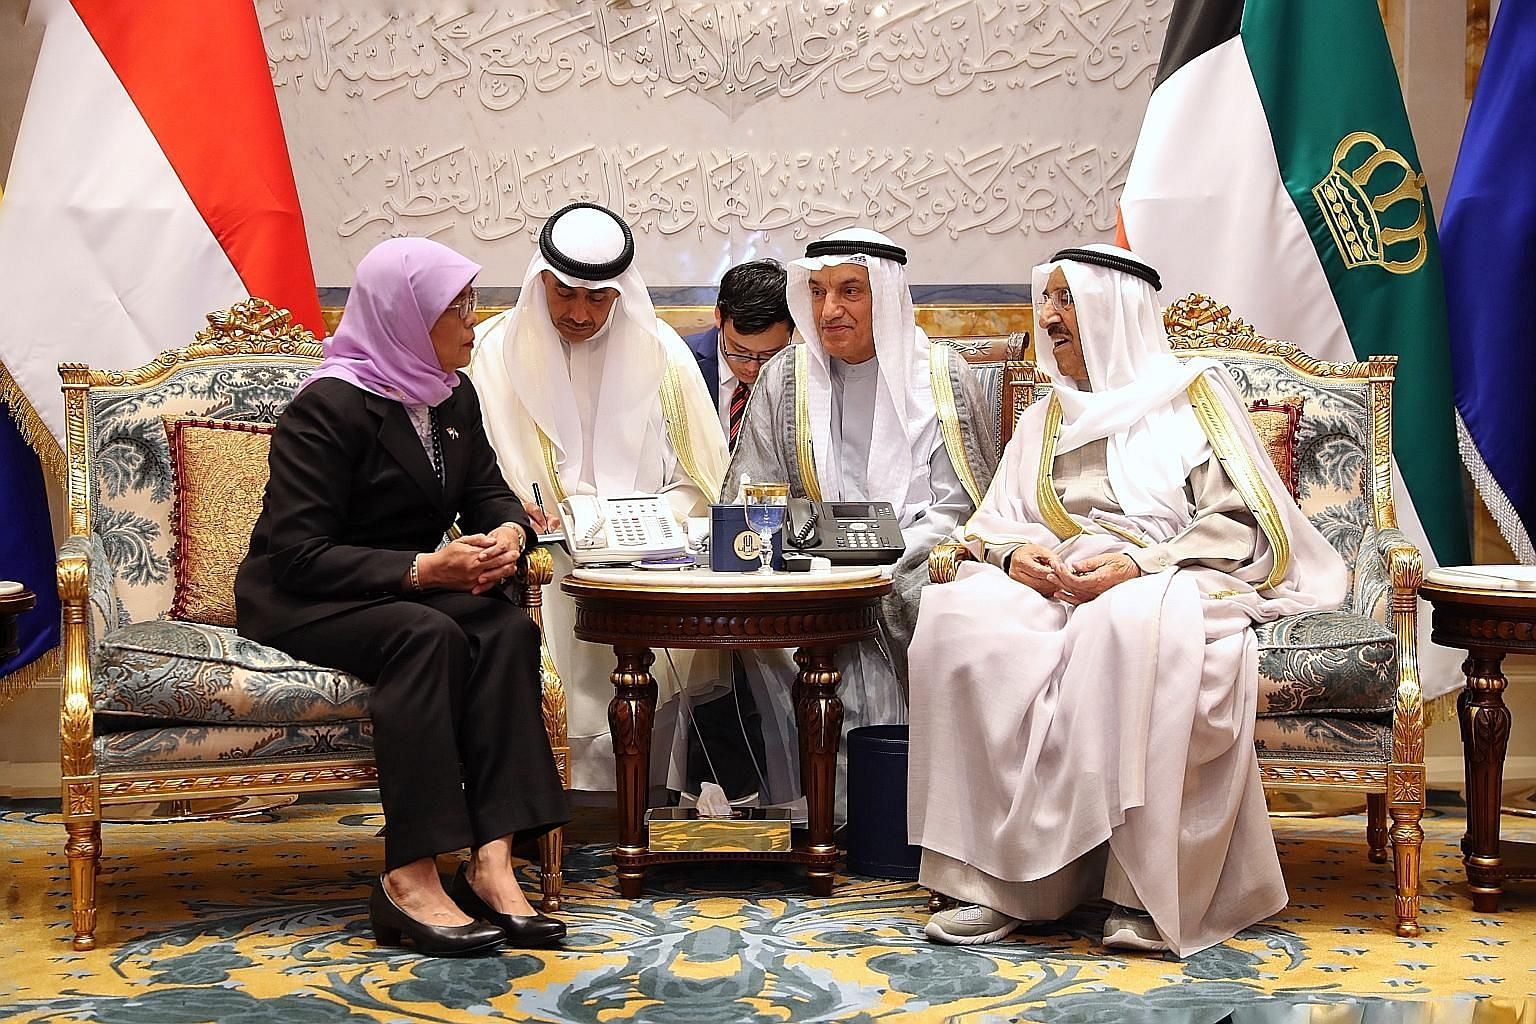 President Halimah Yacob meeting Kuwait Emir Sheikh Sabah Al Ahmad Al Jaber Al Sabah (right) at the country's Bayan Palace yesterday. The two leaders reaffirmed the warm and longstanding friendship between their countries. PHOTO: MCI